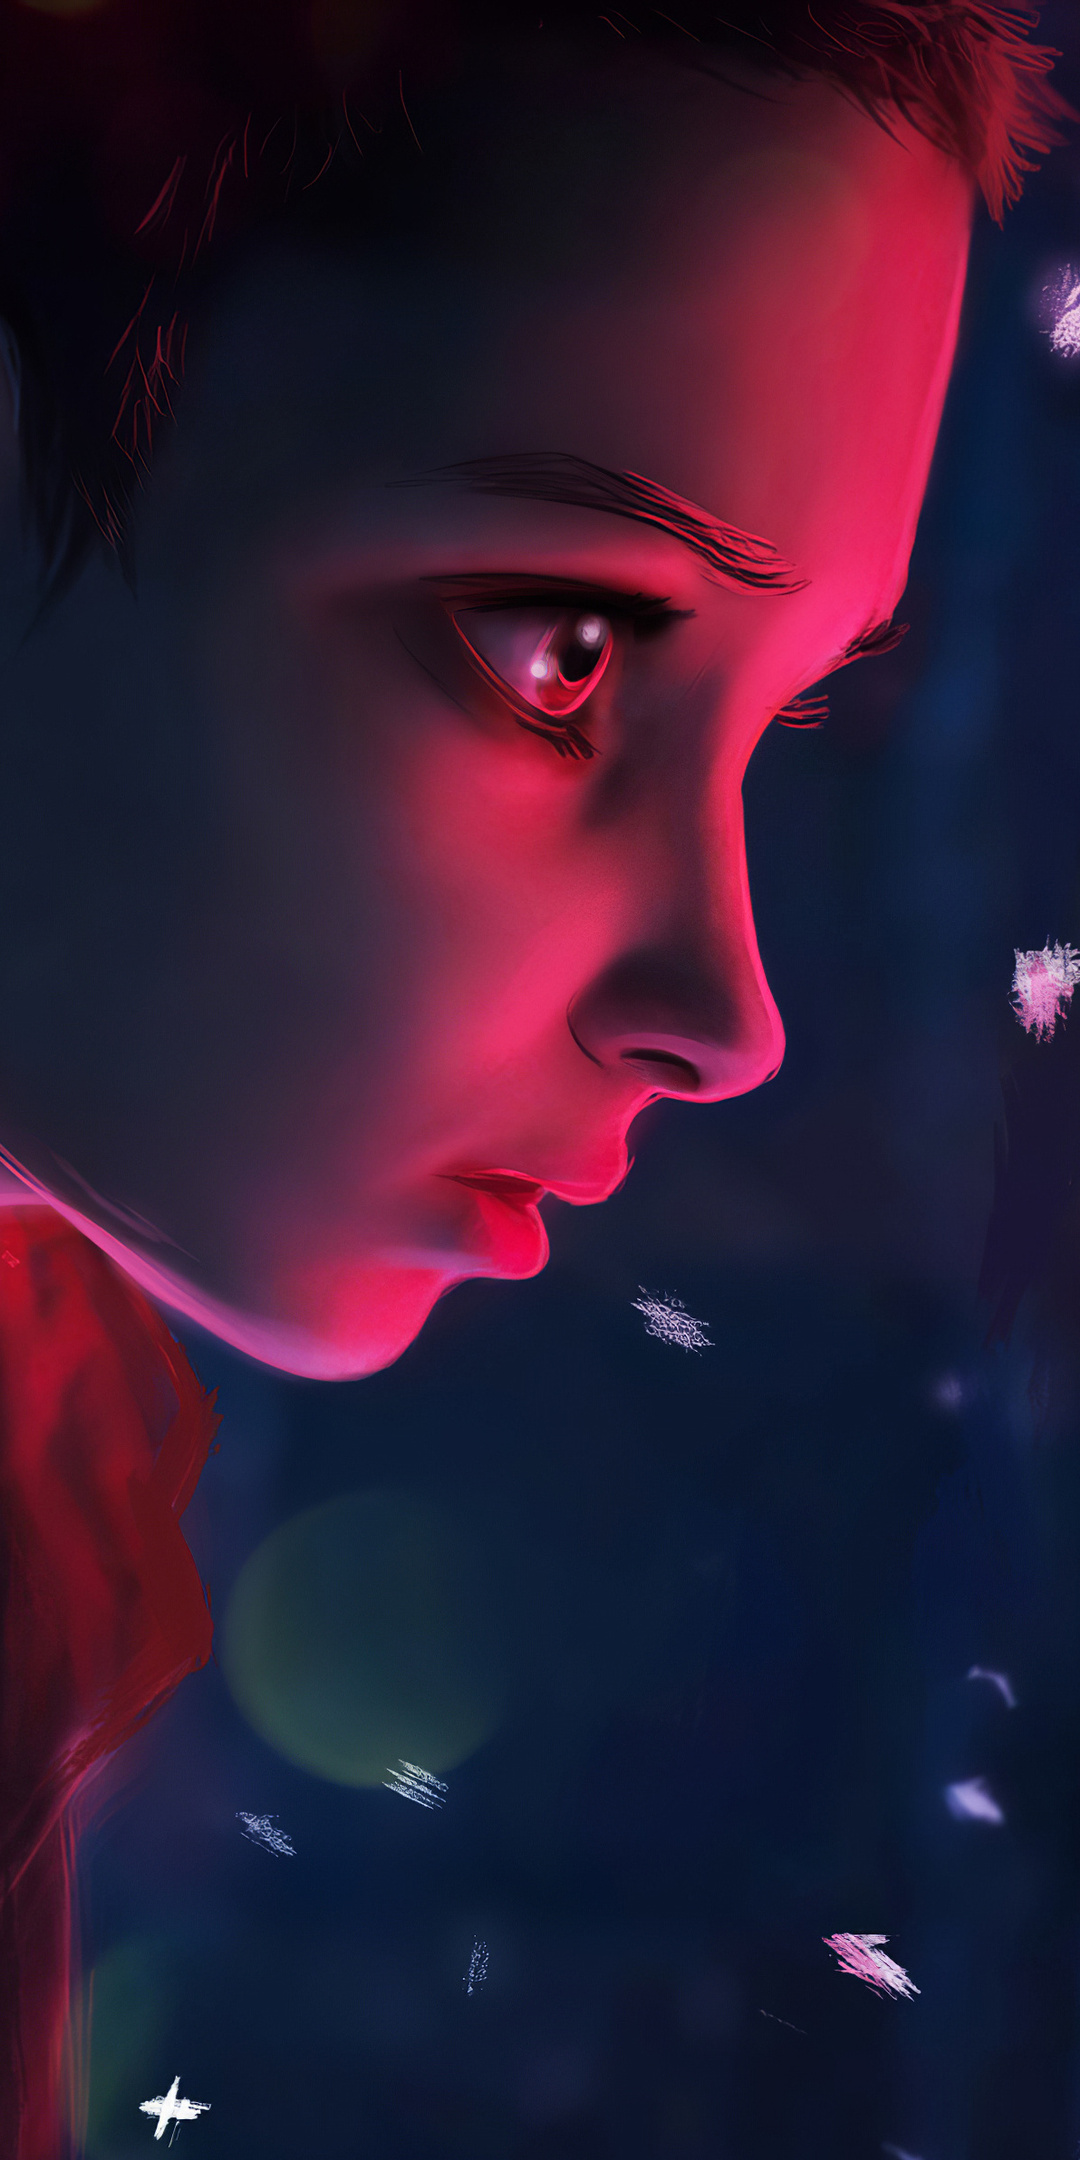 eleven-stranger-things-4k-f9.jpg